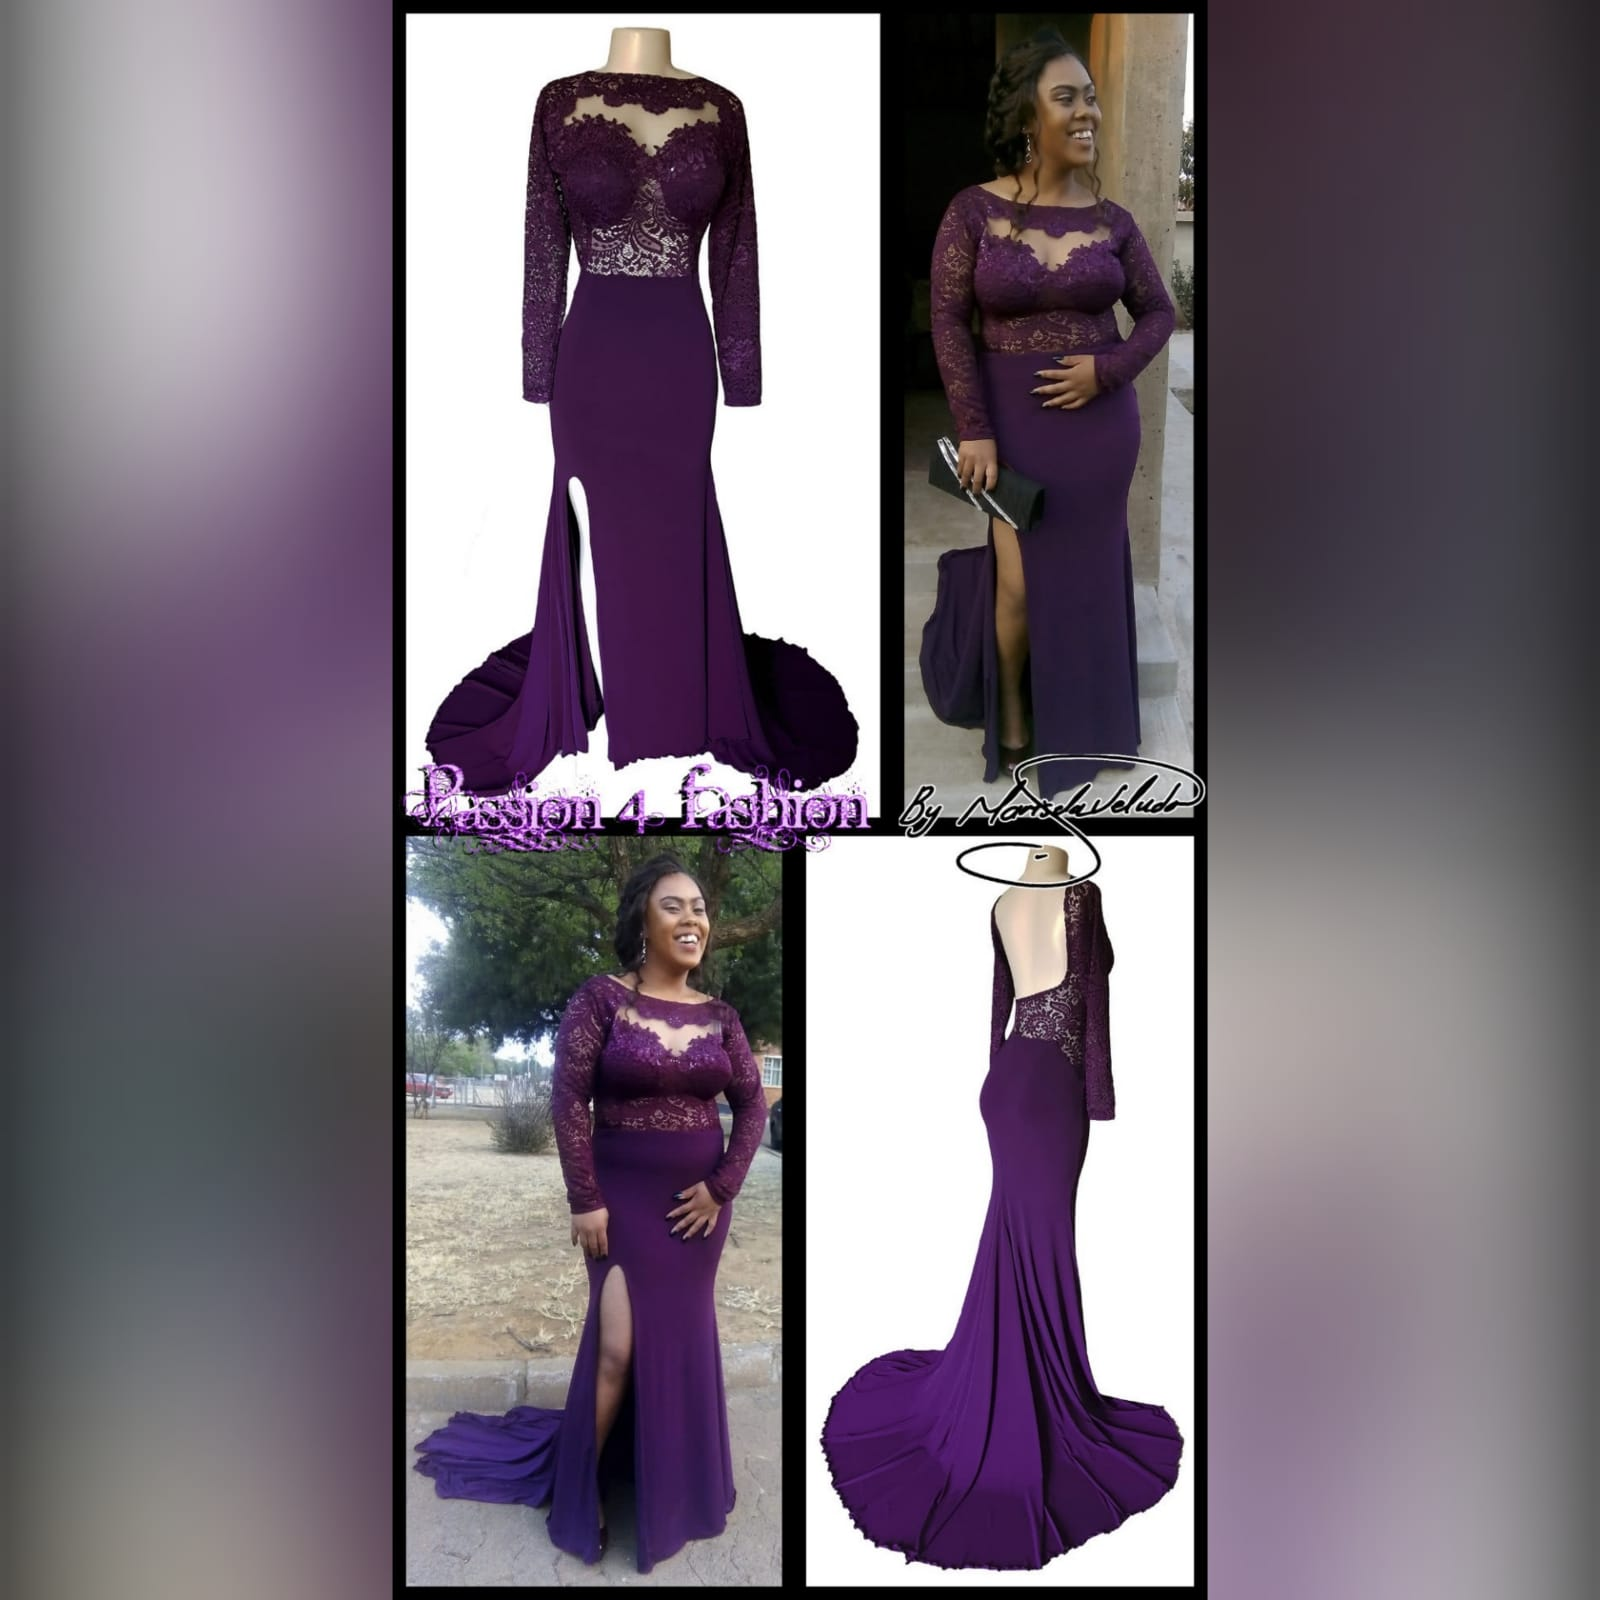 Plum lace bodice soft mermaid matric dance dress 2 plum lace bodice, soft mermaid matric dance dress with a low open rounded open back and hip lace design. With long lace sleeves and a long train.